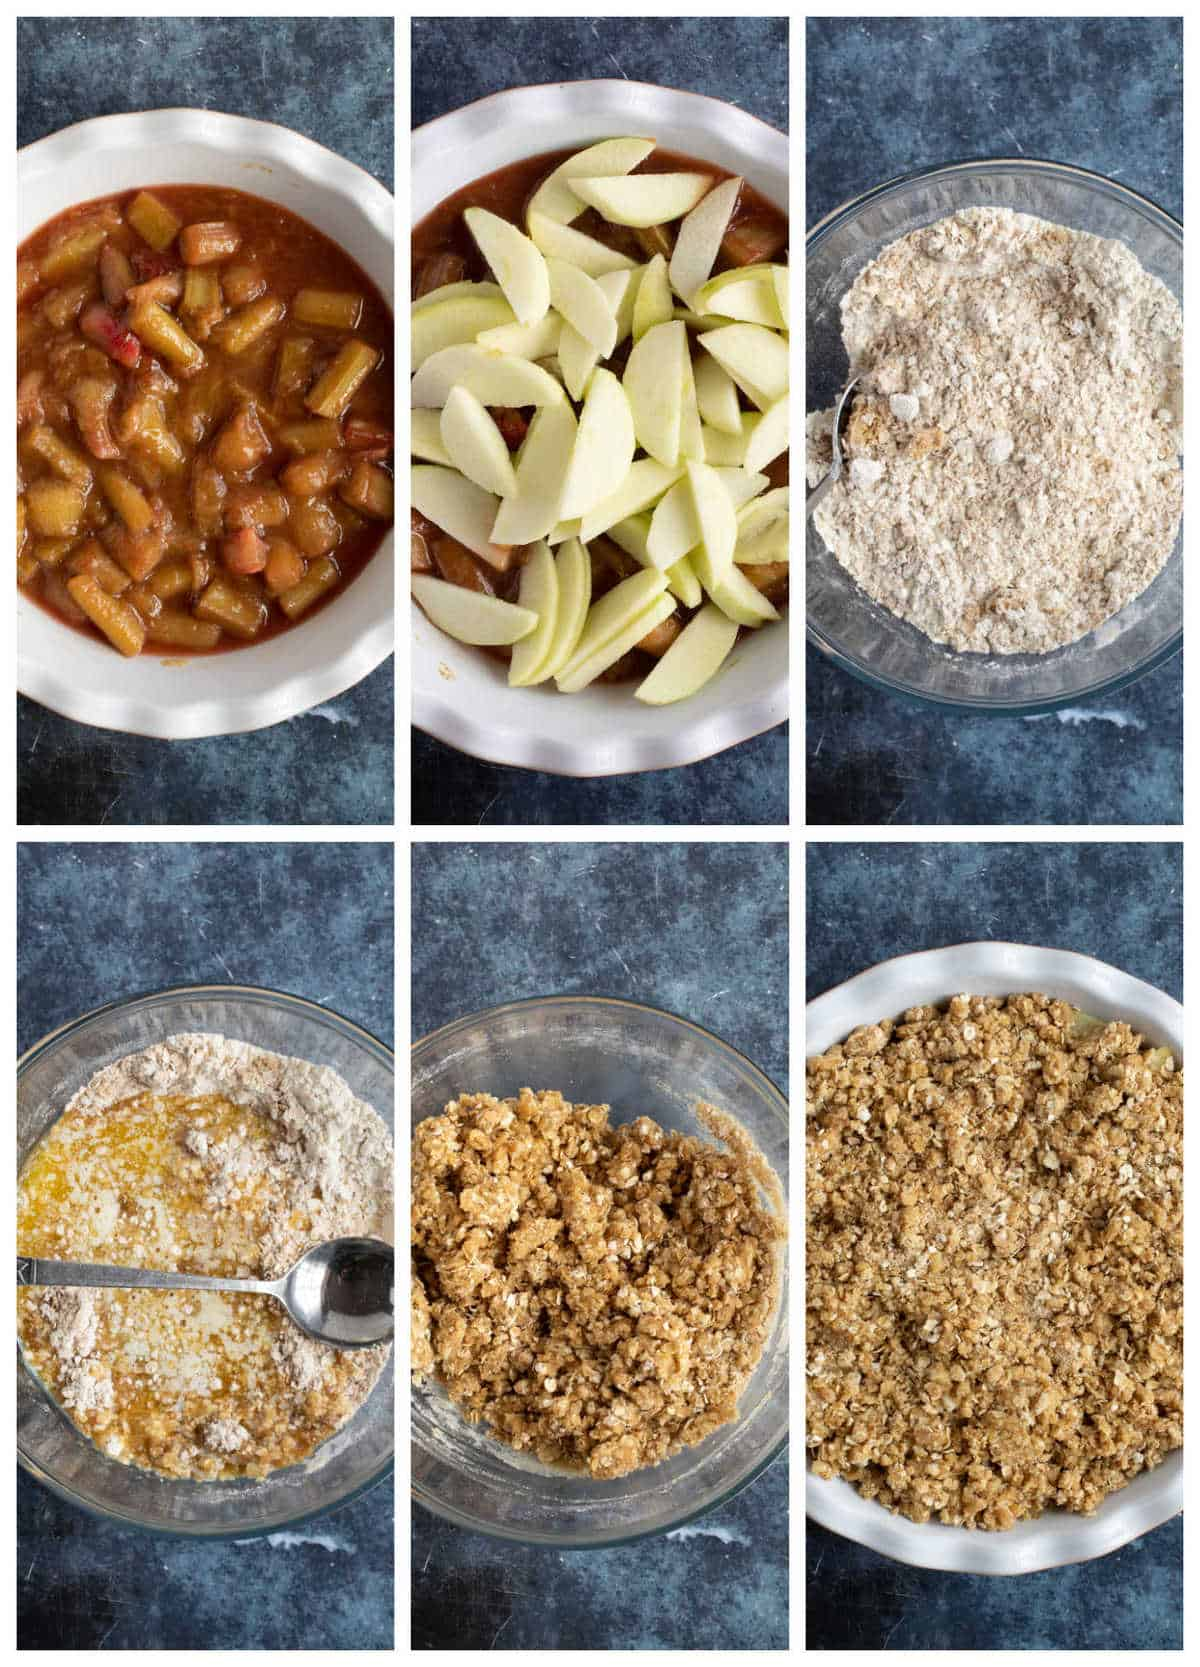 Step by step photo instructions for making rhubarb crumble.